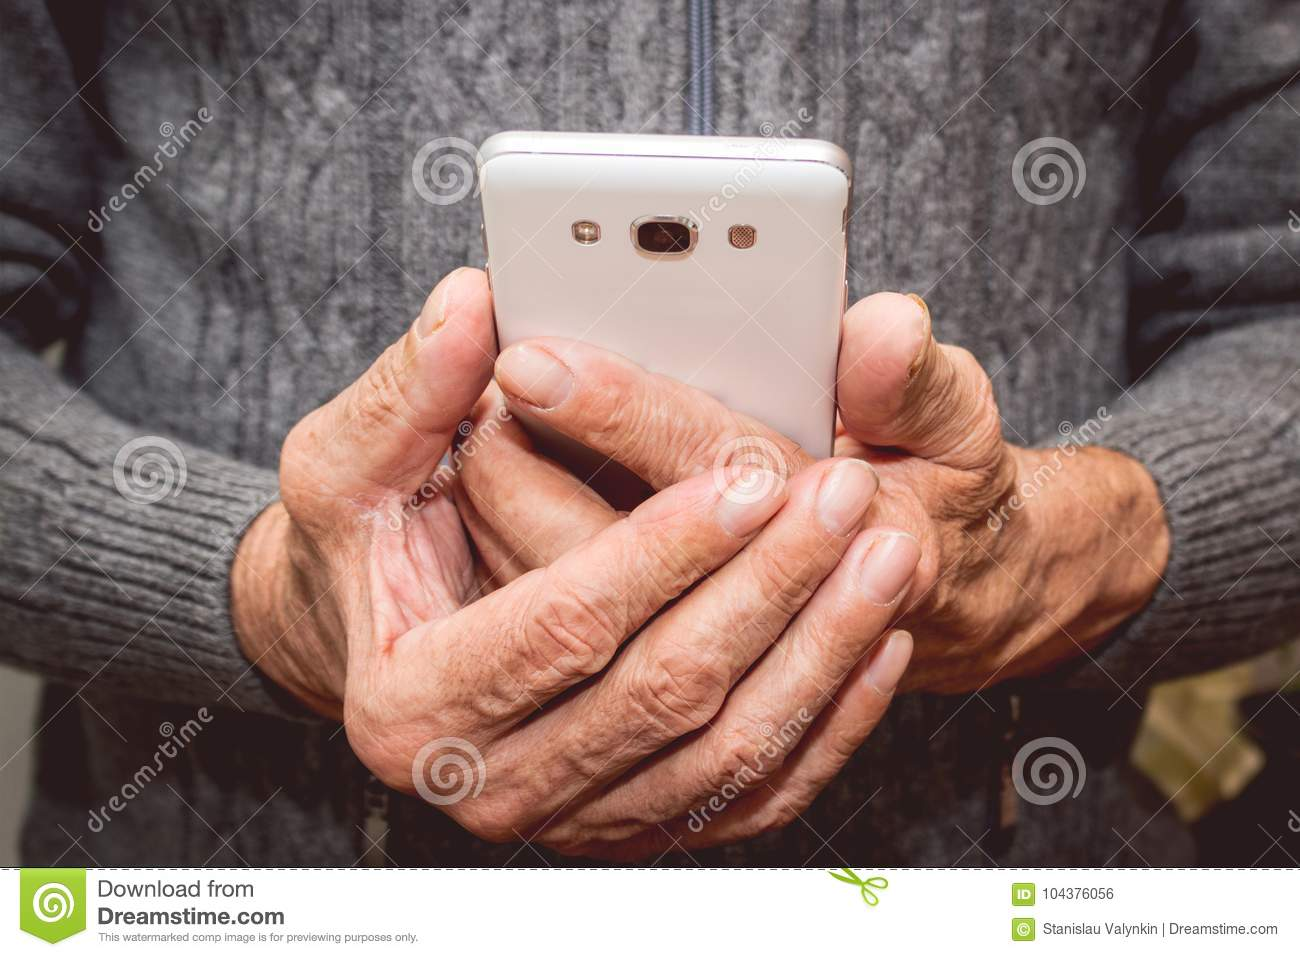 Elderly man standing with mobile phone in hand